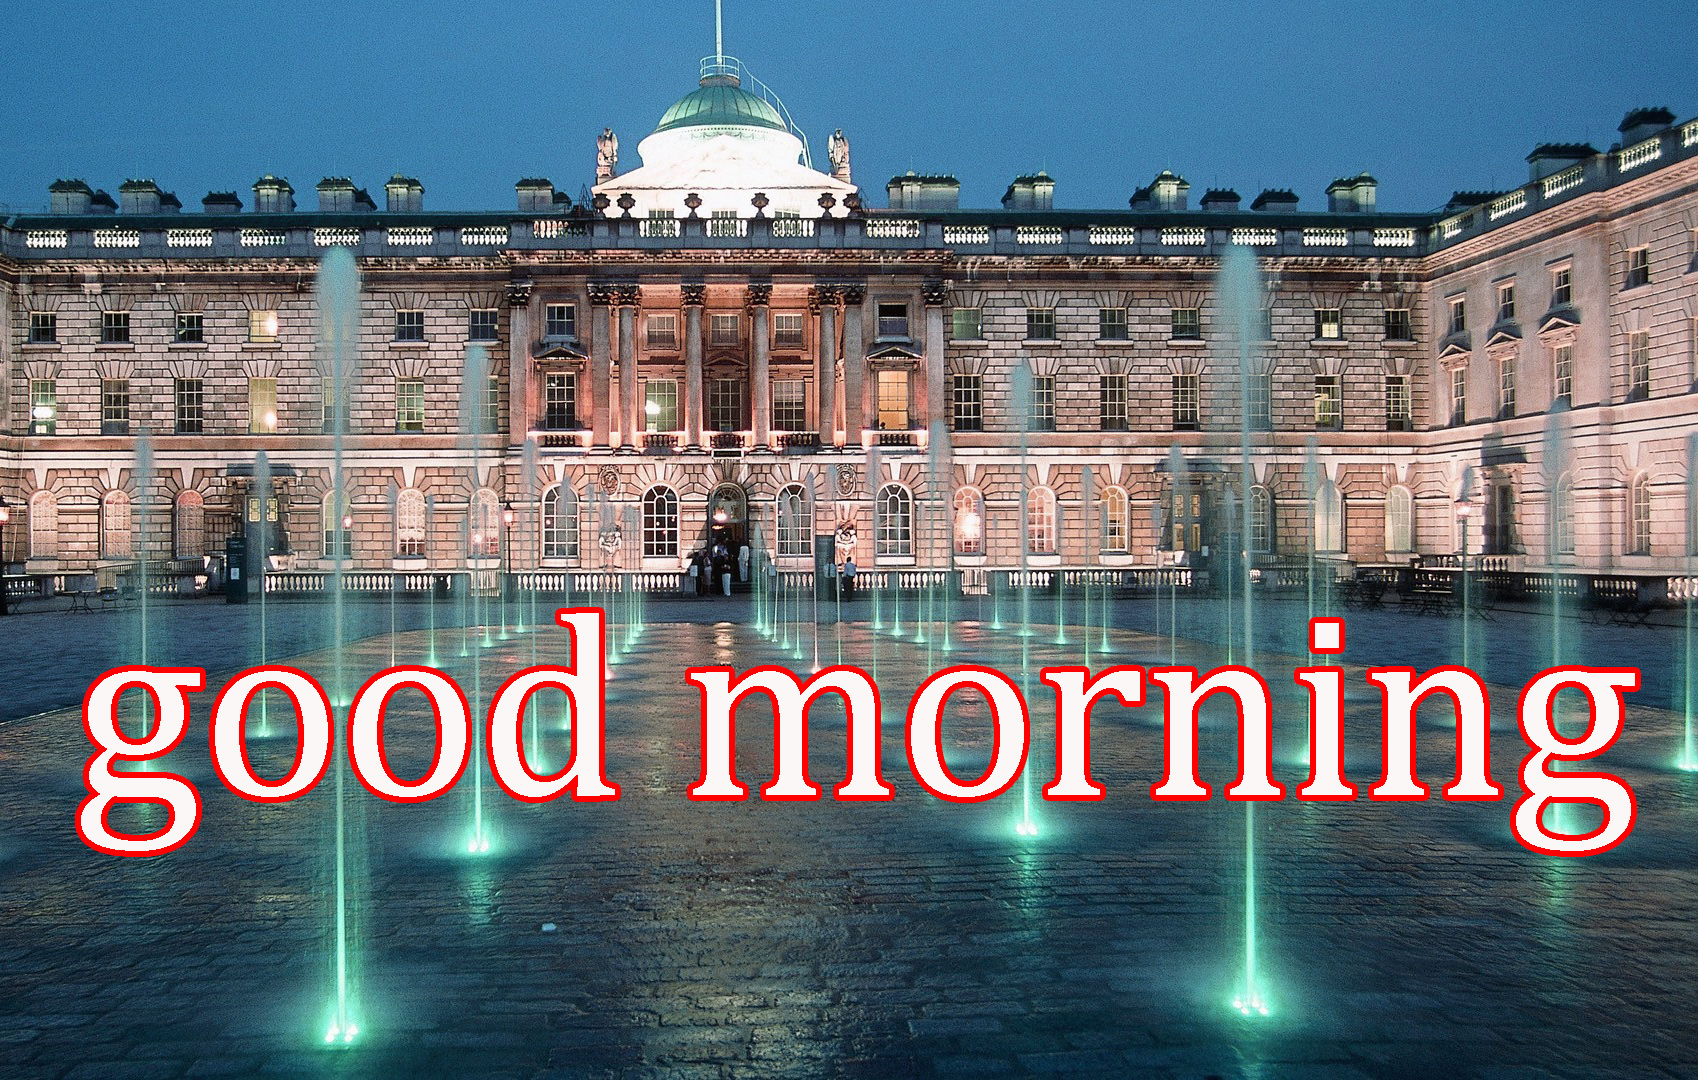 GOOD MORNING IMAGE PHOTO WALLPAPER FREE DOWNLOAD FOR FACEBOOK